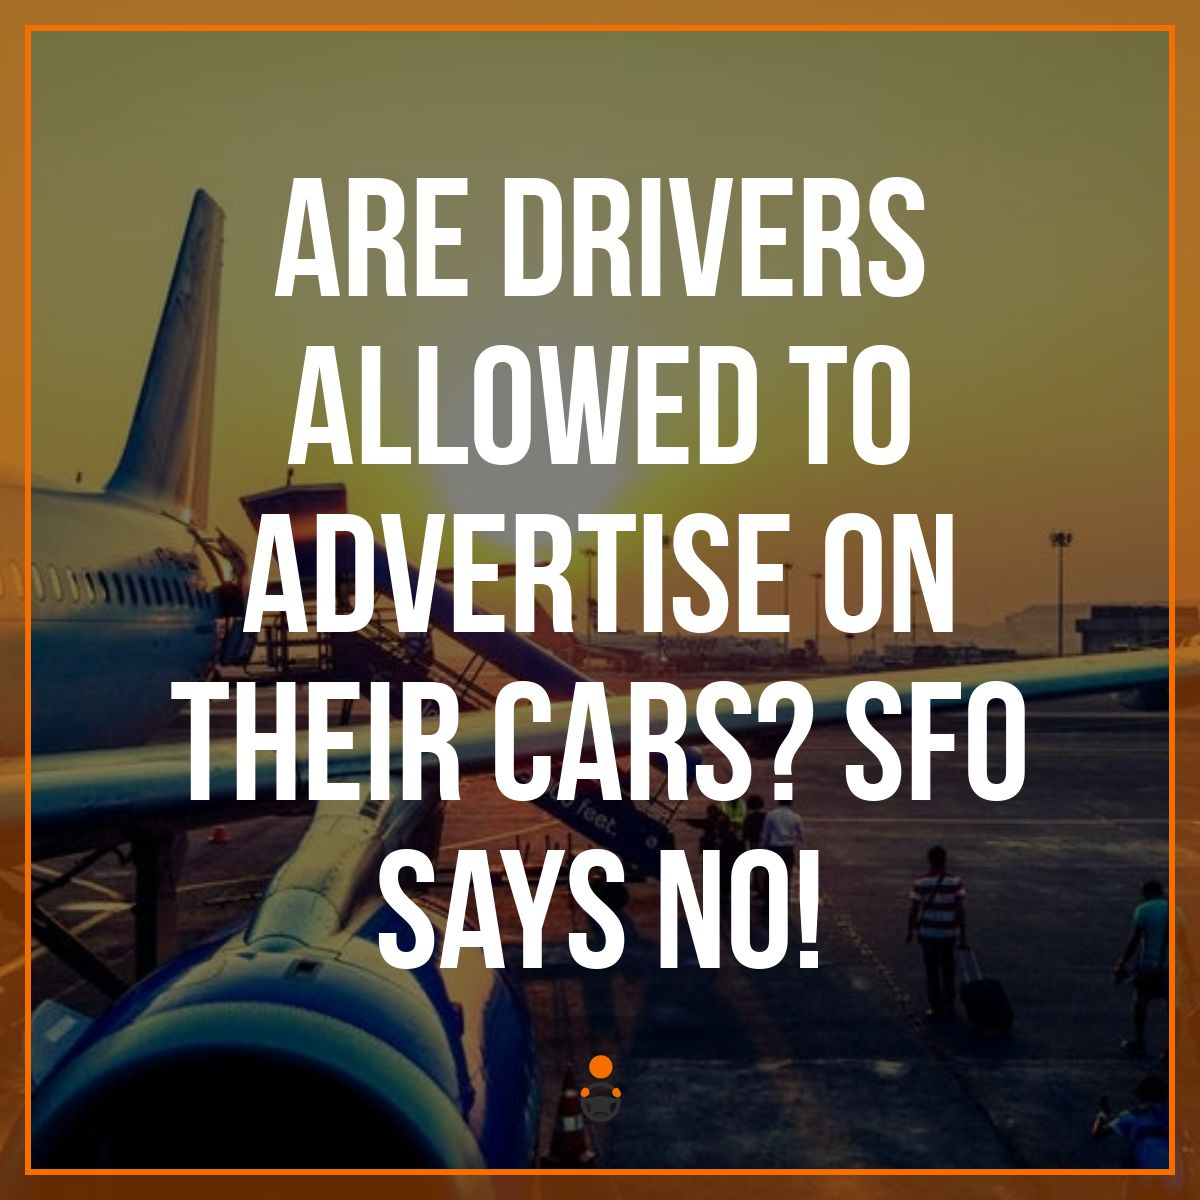 Are Drivers Allowed to Advertise on Their Cars? SFO Says No!